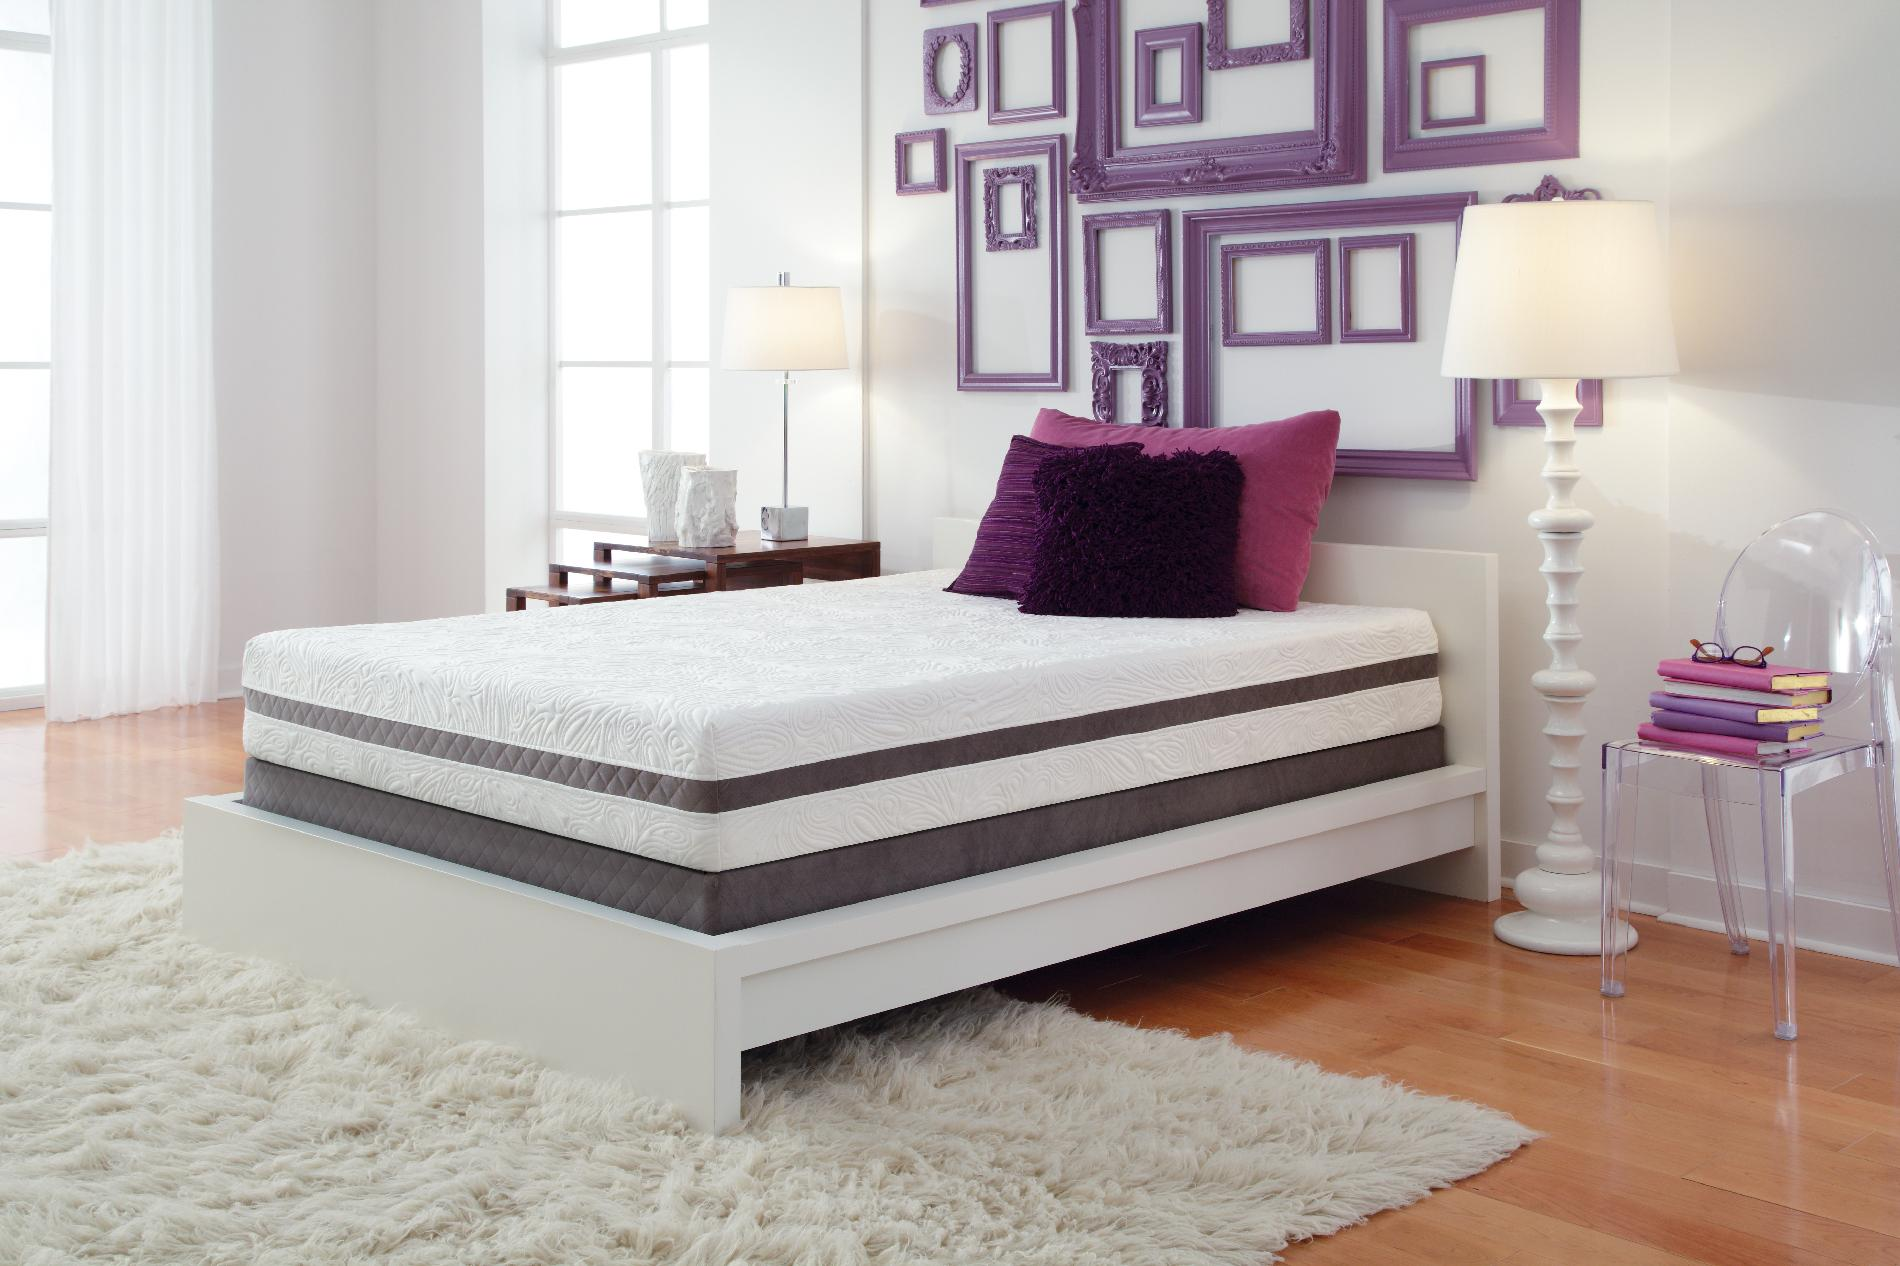 Sealy Posturepedic Optimum Radiance II, Firm, Queen Mattress Only